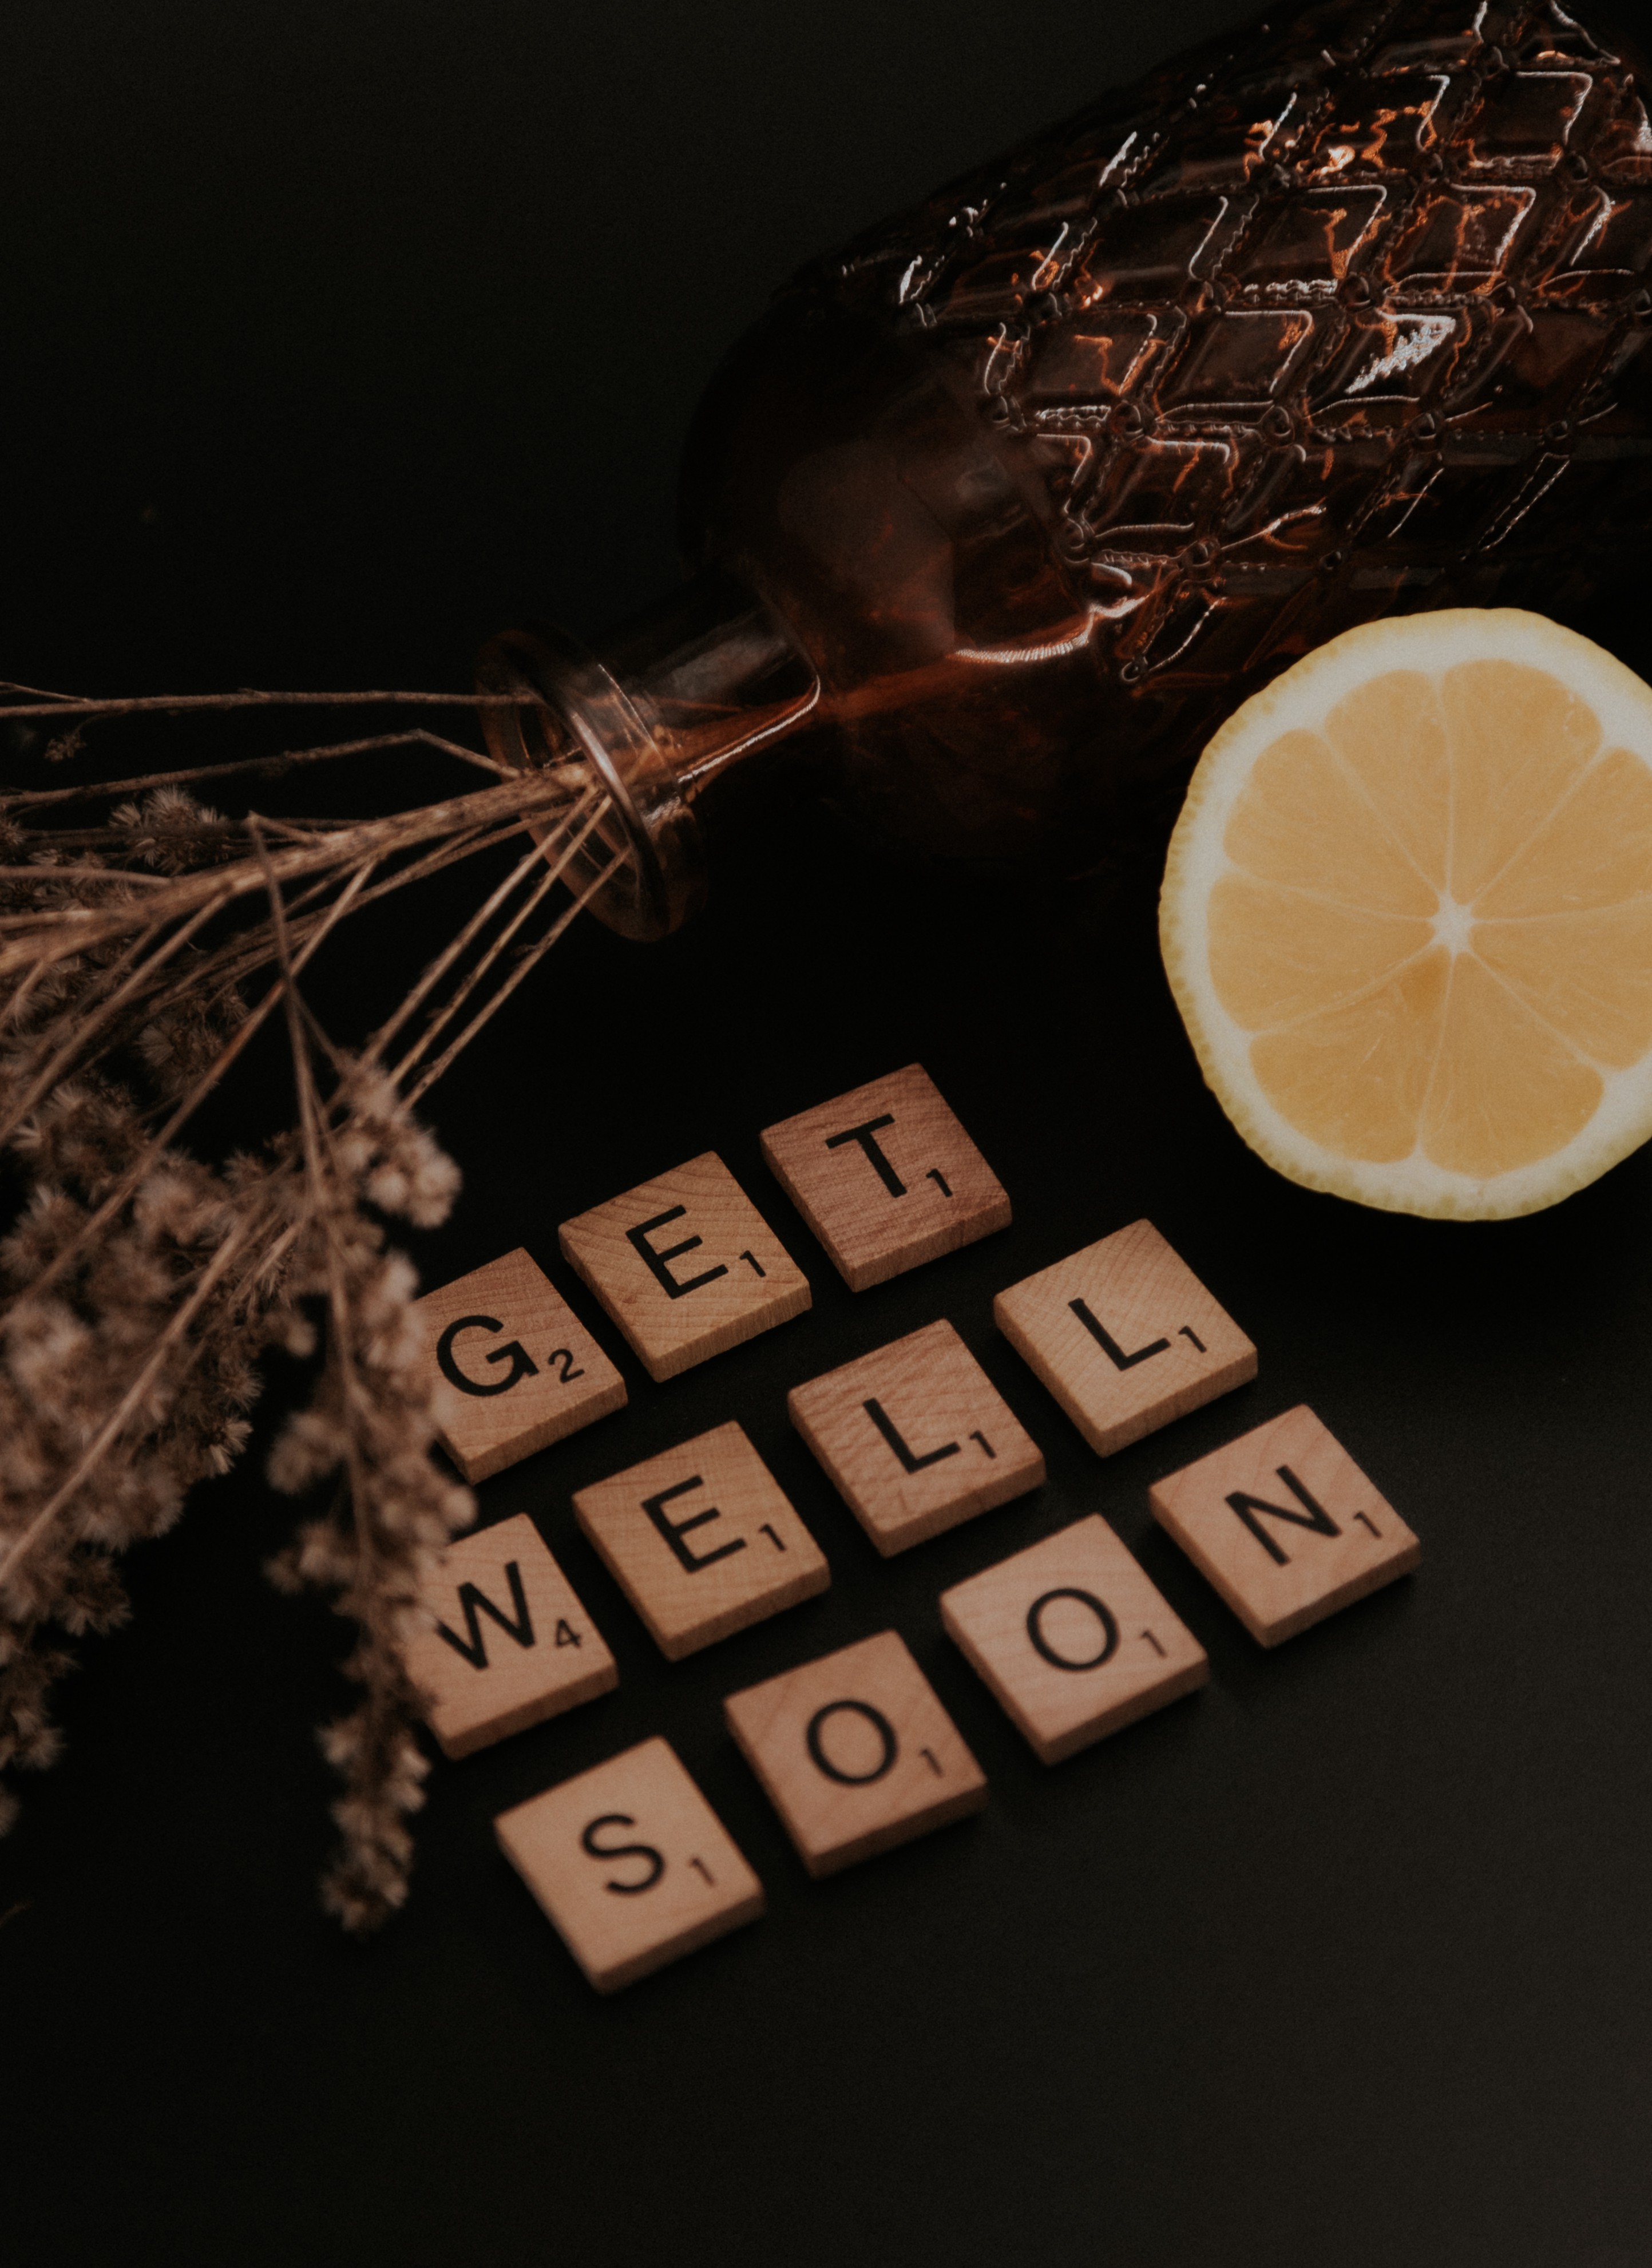 Wooden letter tiles spell out 'Get Well Soon'